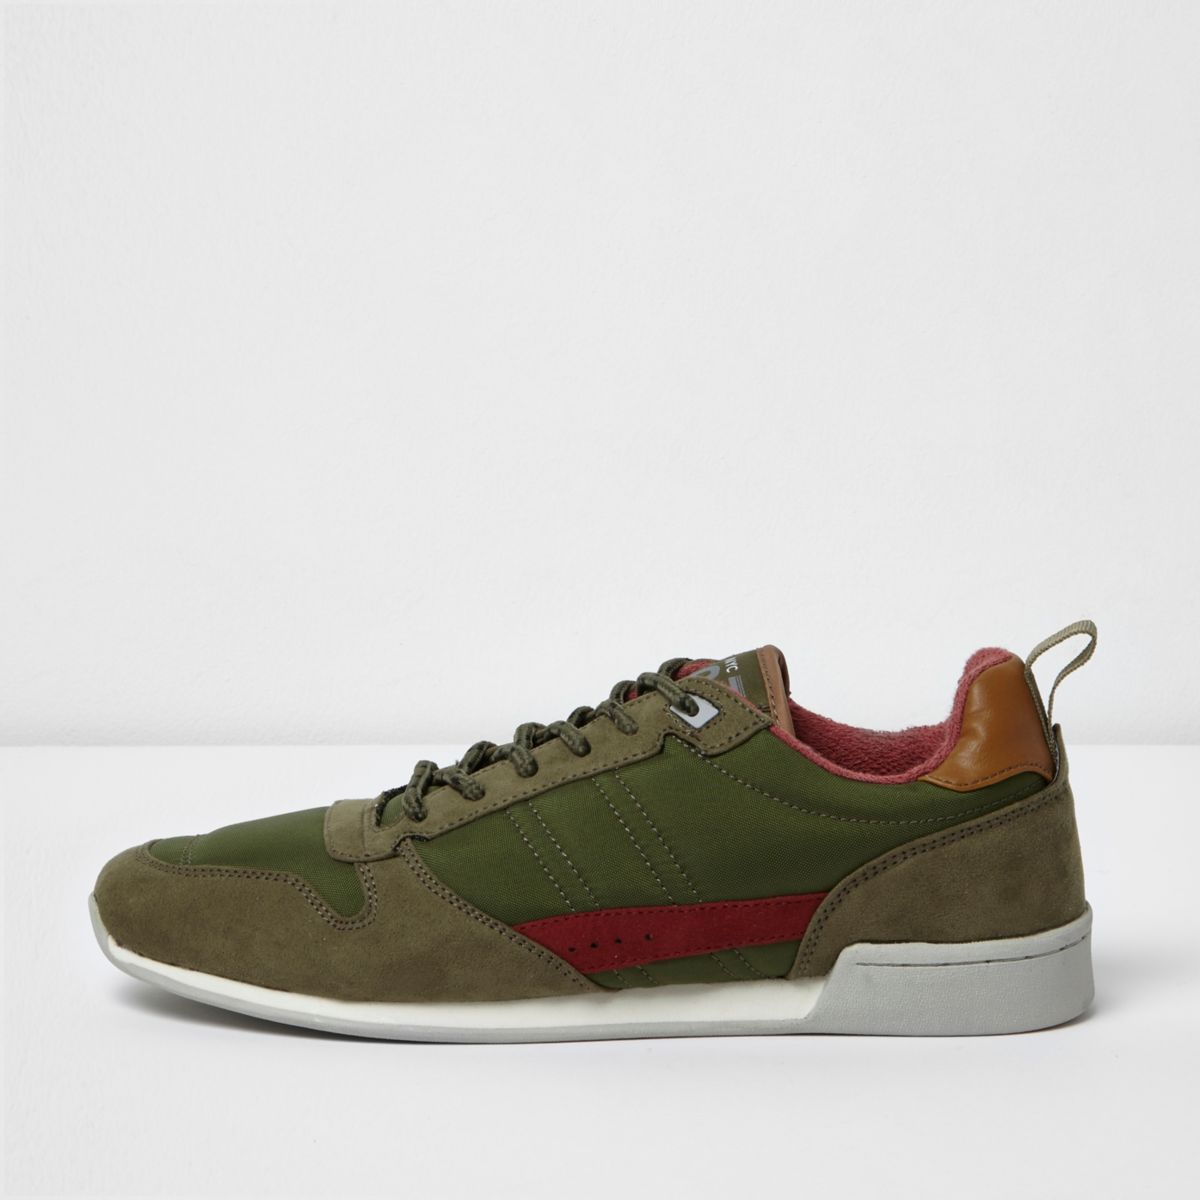 Dark green retro runner trainers